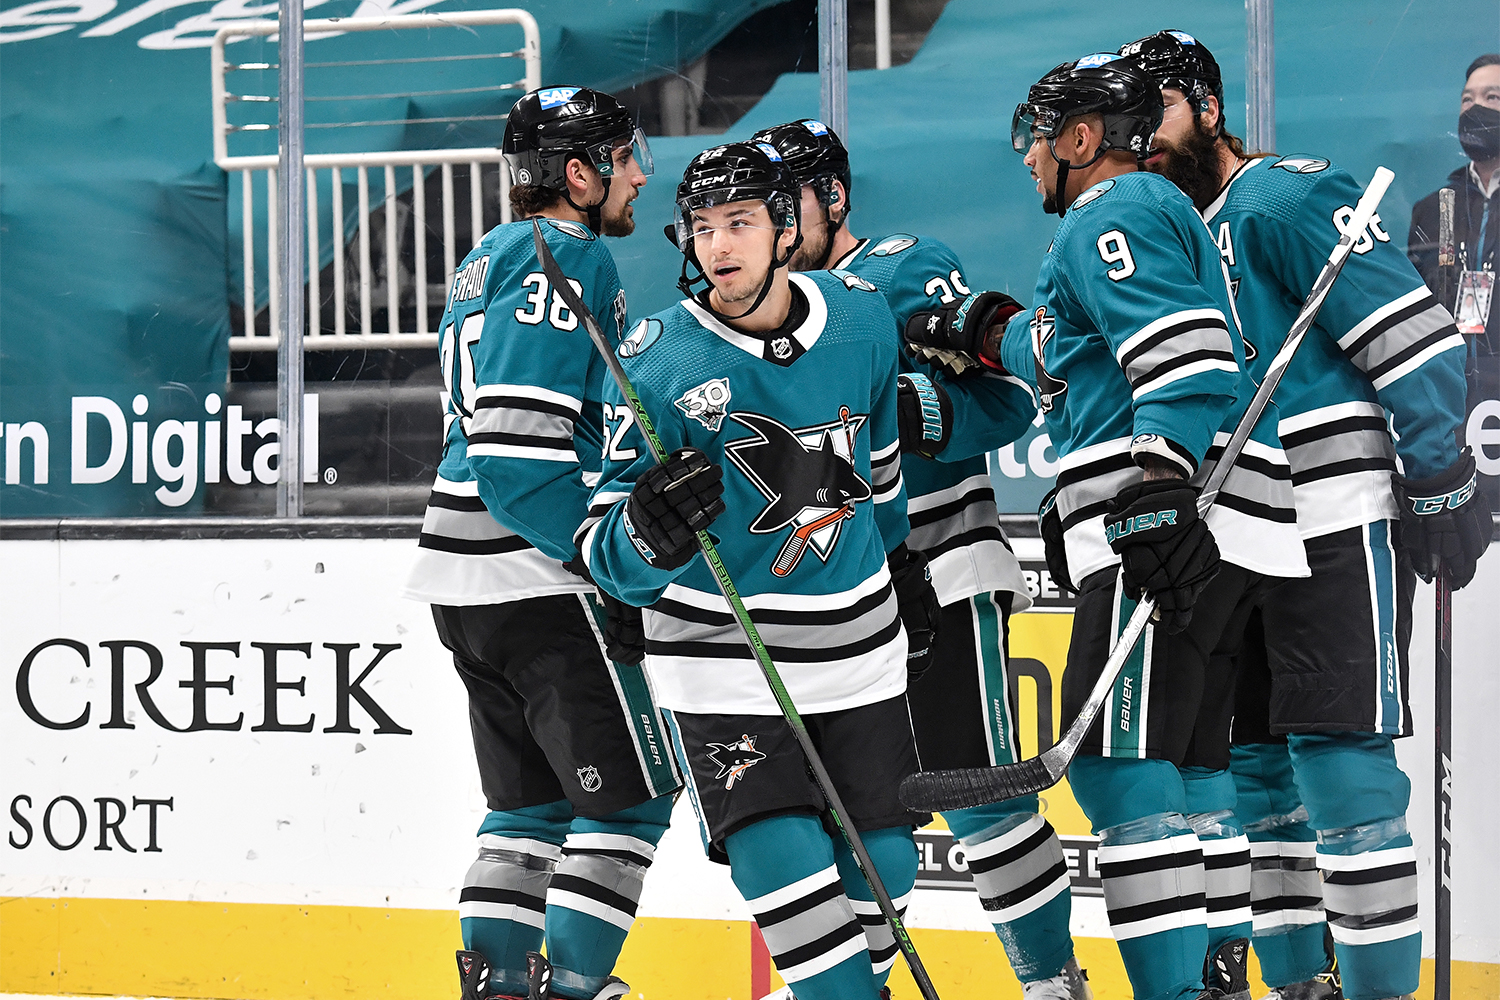 Kevin Labanc #62, Brent Burns #88, Logan Couture #39, Mario Ferraro #38 and Evander Kane #9 of the San Jose Sharks celebrate scoring a goal against the Los Angeles Kings at SAP Center on April 9, 2021